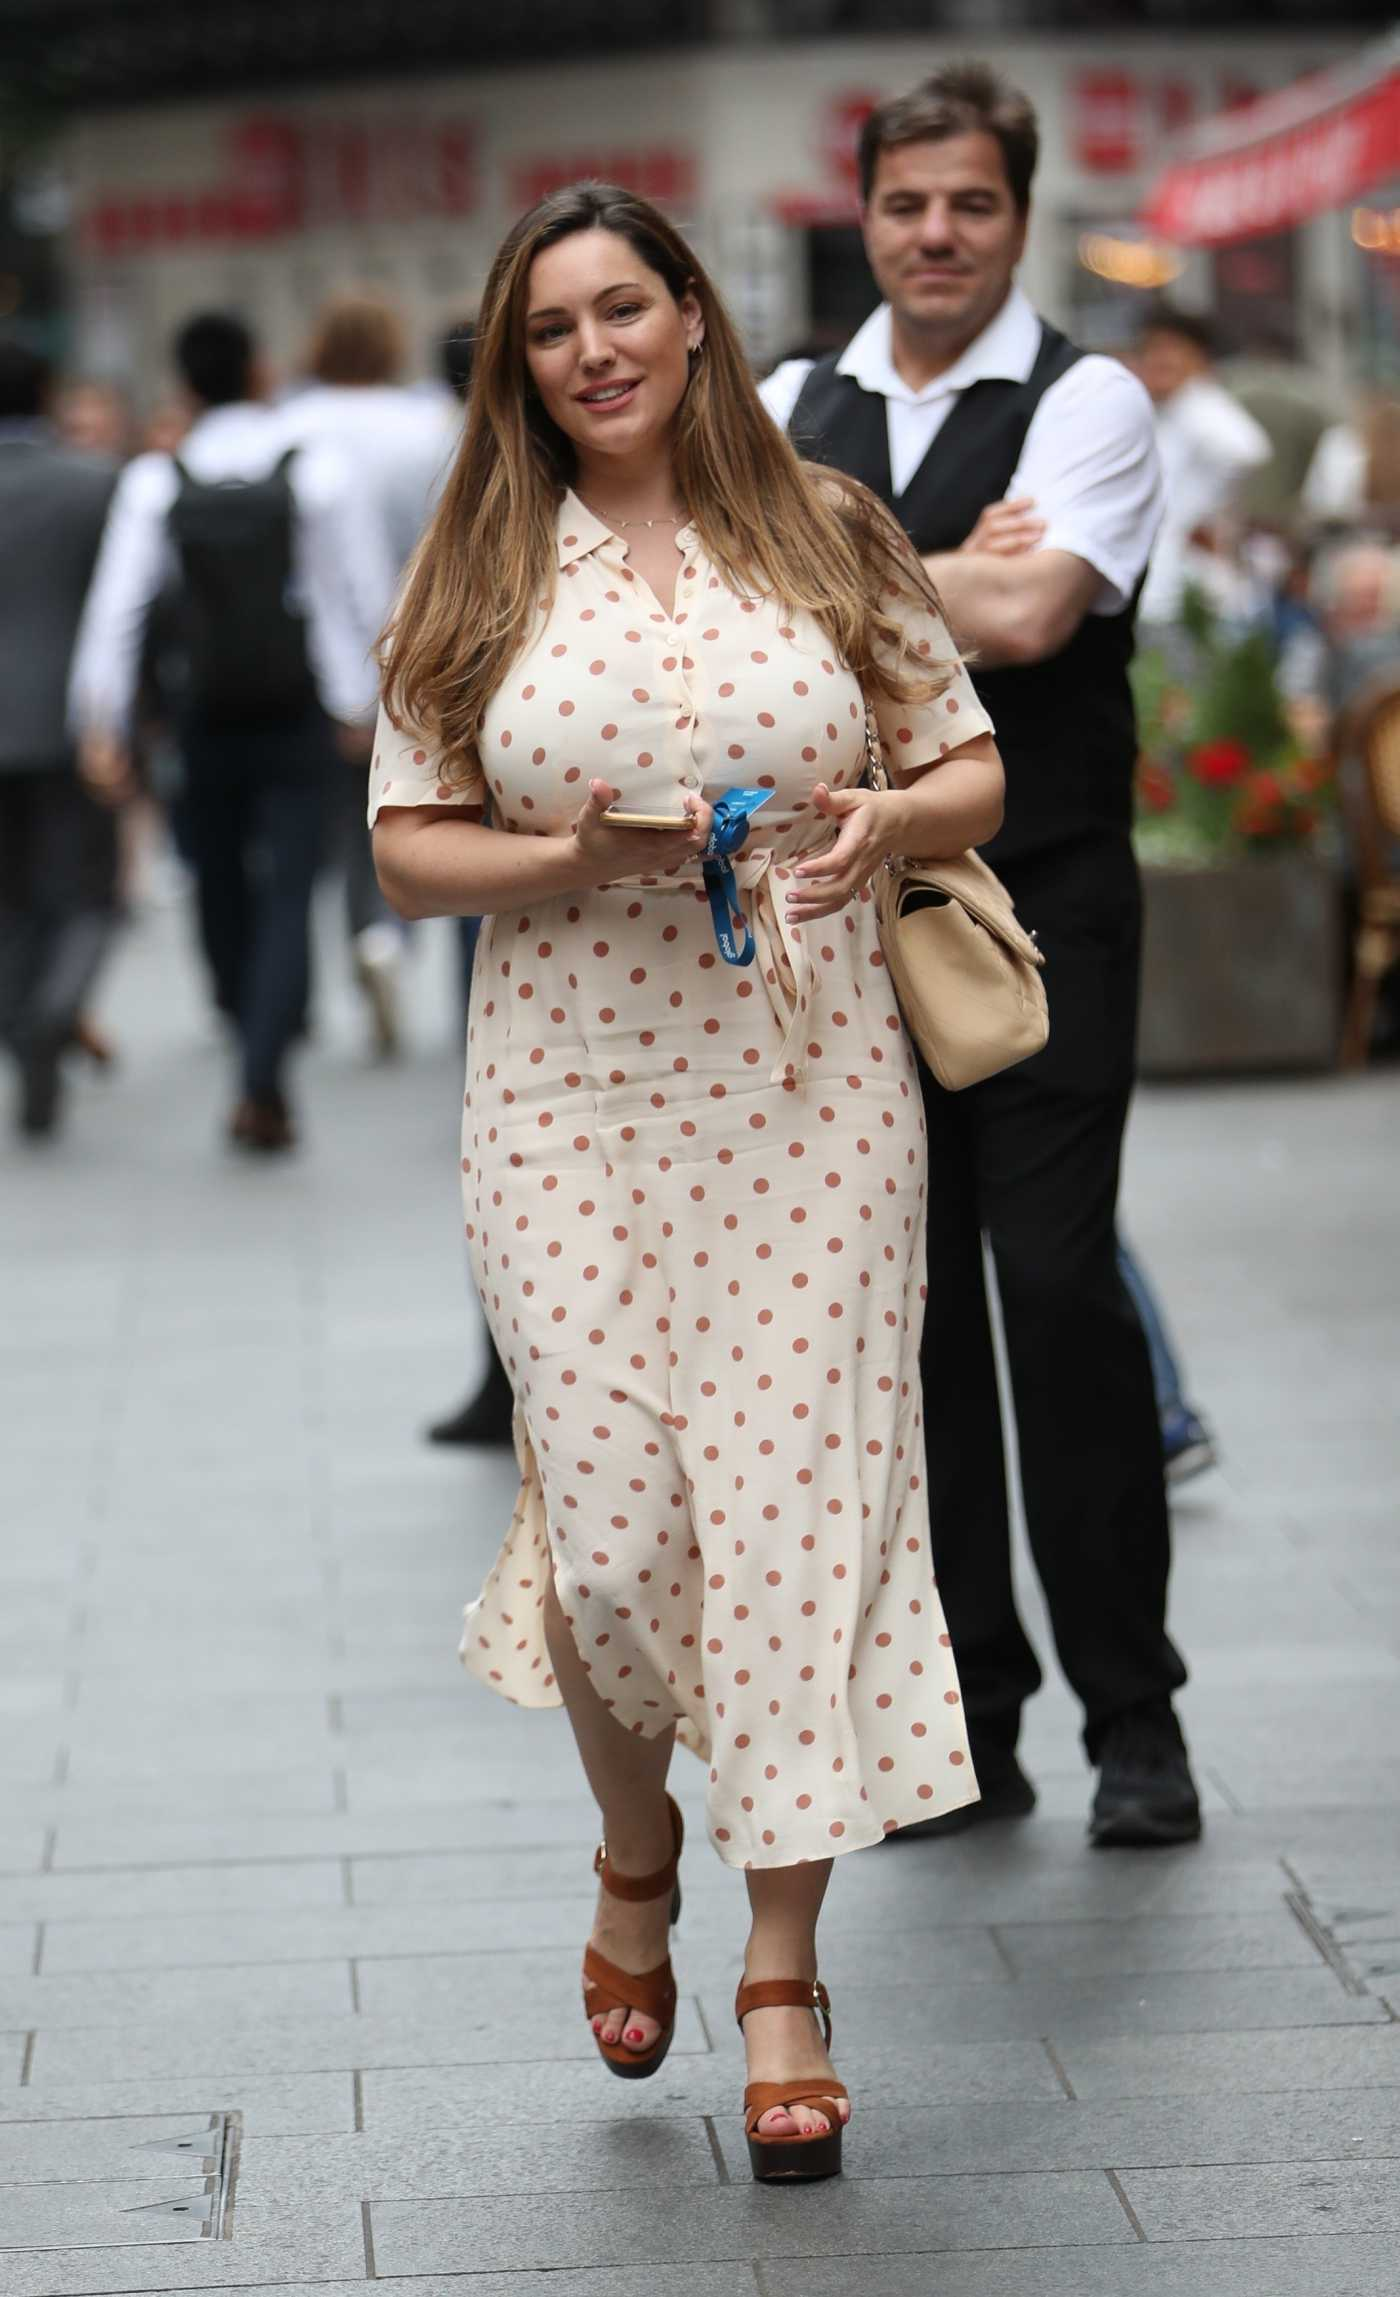 Kelly Brook in a Beige Polka Dot Dress Arrives at Global Radio Studios in London 07/09/2019